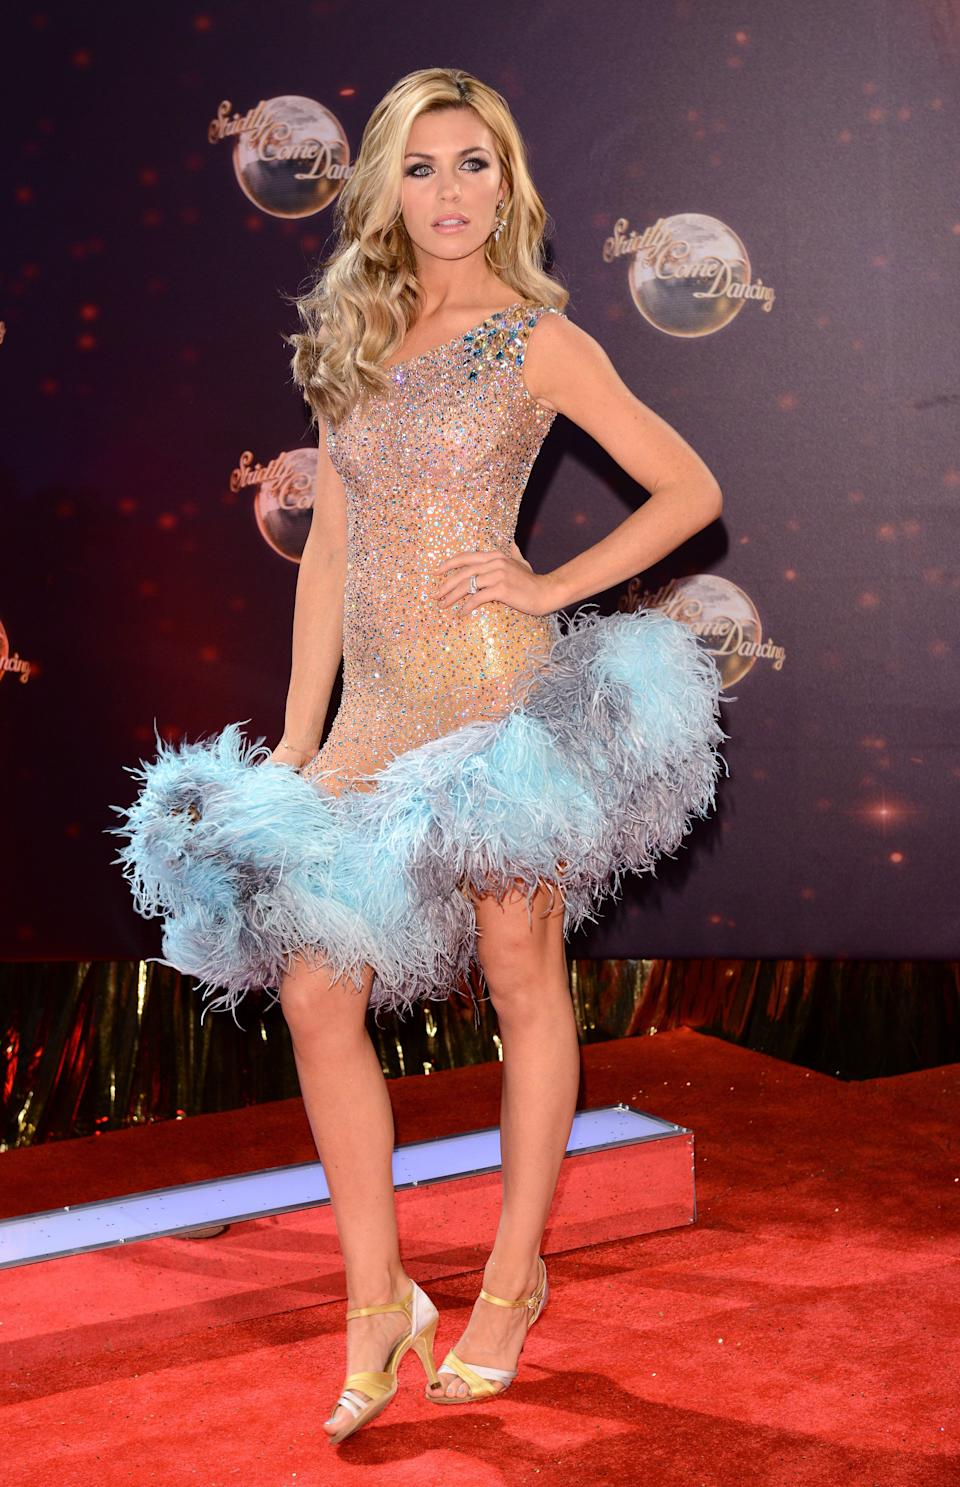 Abbey Clancy won Strictly Come Dancing in 2013 (Photo: Karwai Tang via Getty Images)